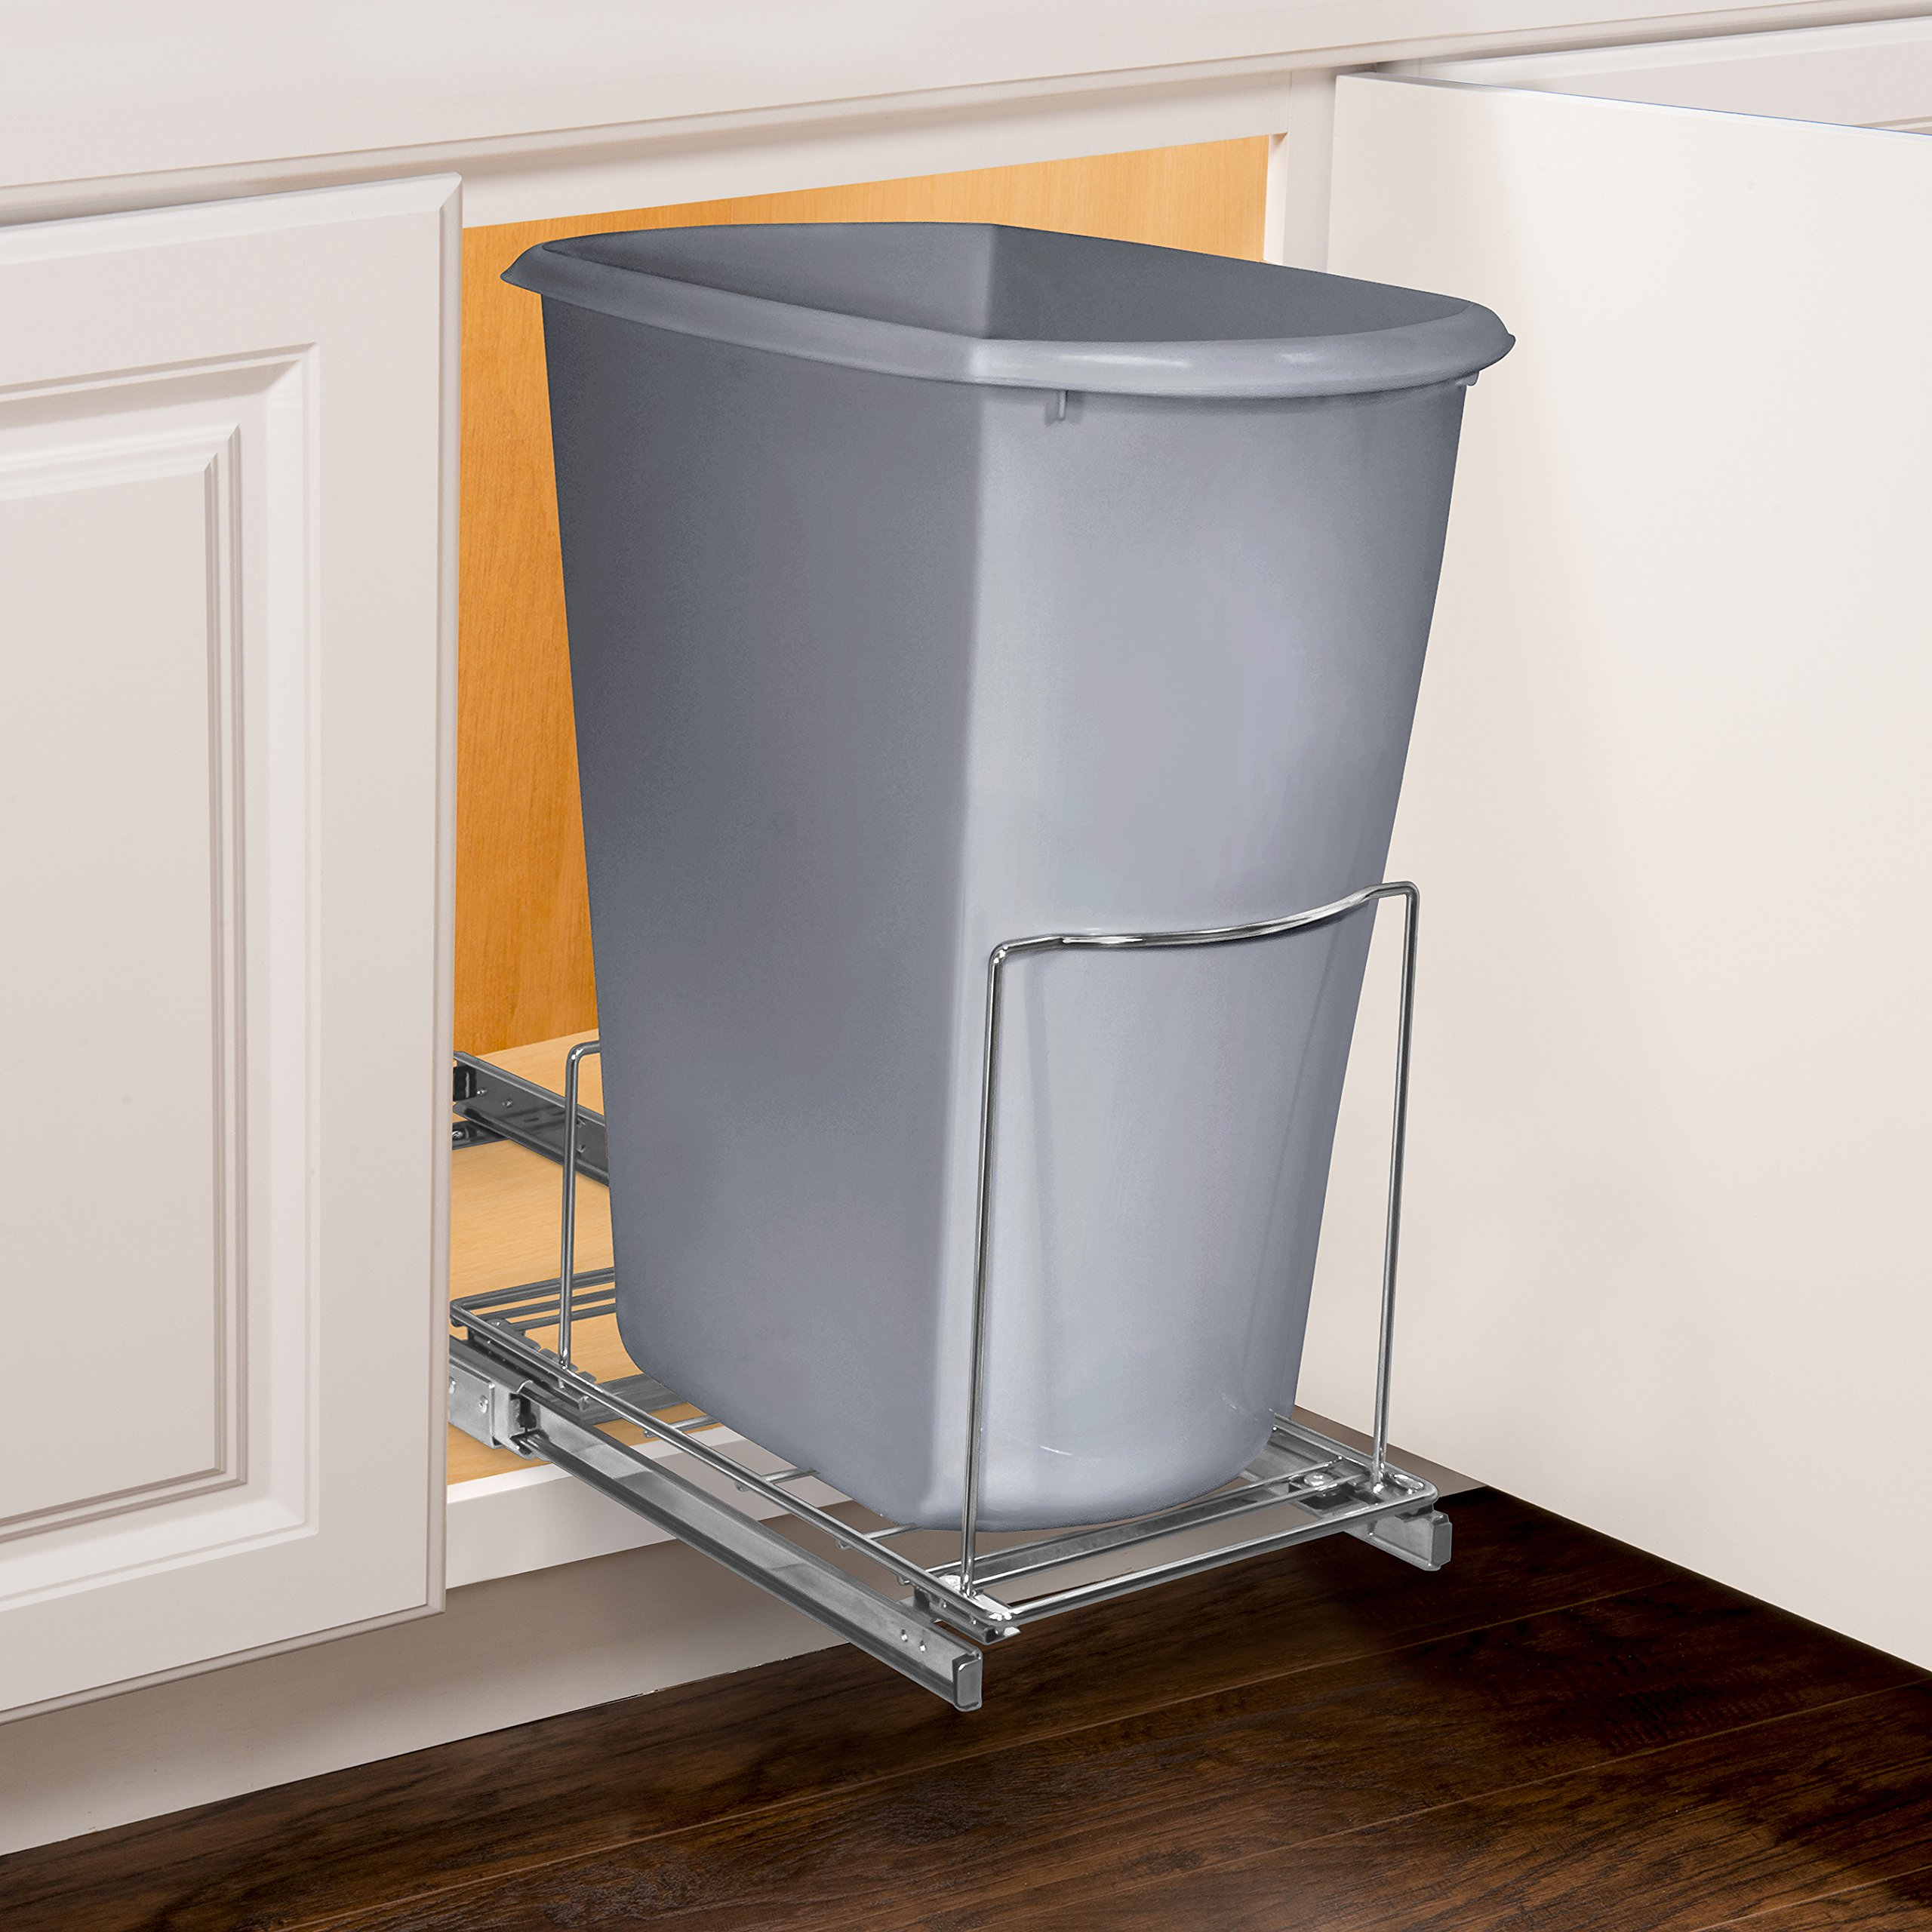 Lynk Professional Slide Out Bin Holder - Pull Out Under Cabinet Sliding Organizer - 10.1 inch Wide x 20.02 inch deep - Chrome